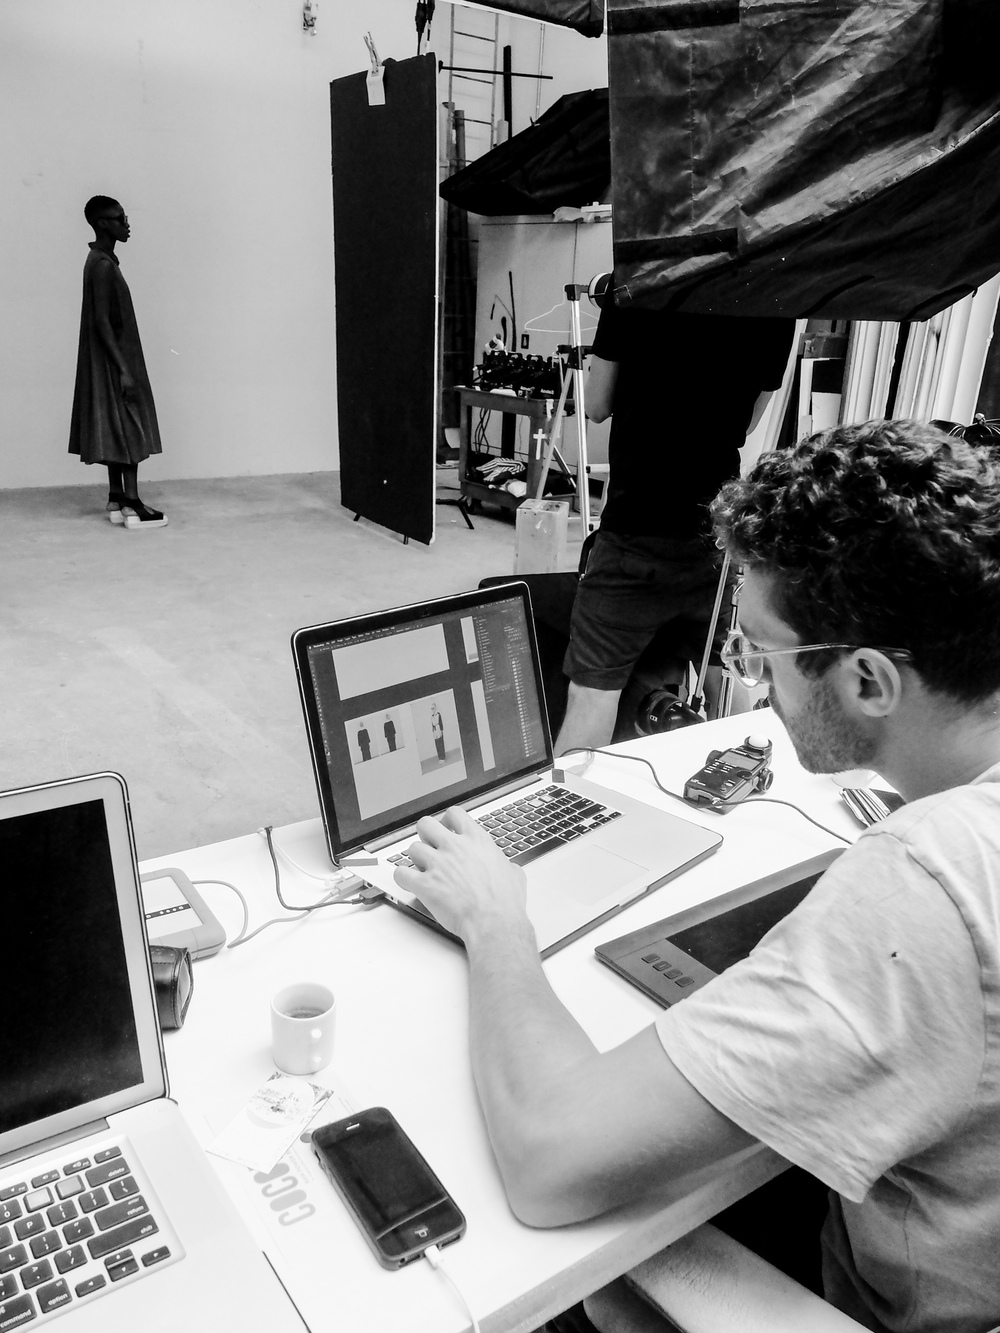 SS16WORKINPROGRESS-SHOOTING25.jpg